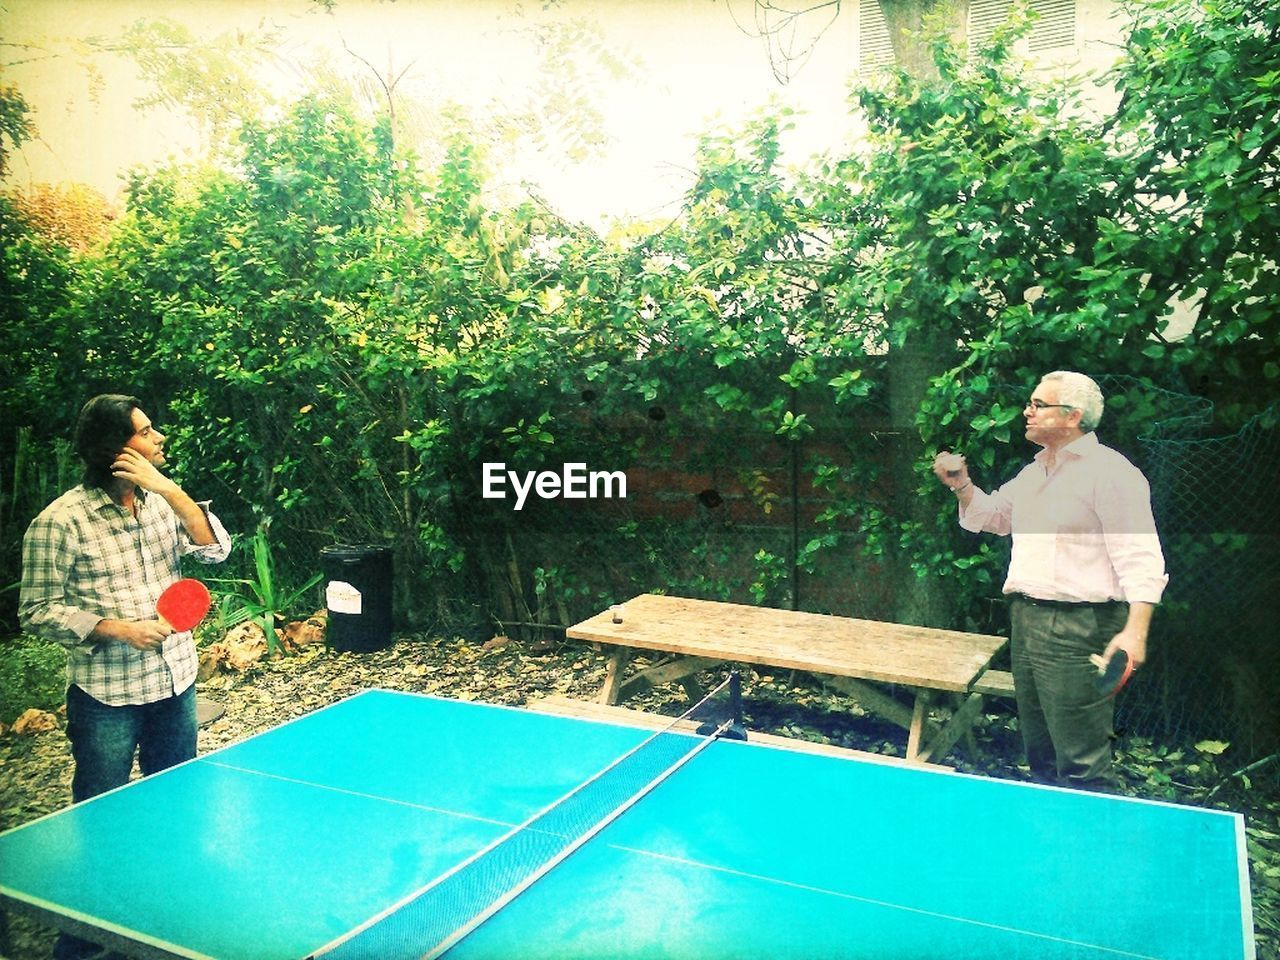 table tennis, standing, two people, casual clothing, togetherness, leisure activity, day, mature adult, tree, outdoors, mature men, holding, enjoyment, men, lifestyles, young adult, sport, playing, adult, real people, full length, young women, people, adults only, nature